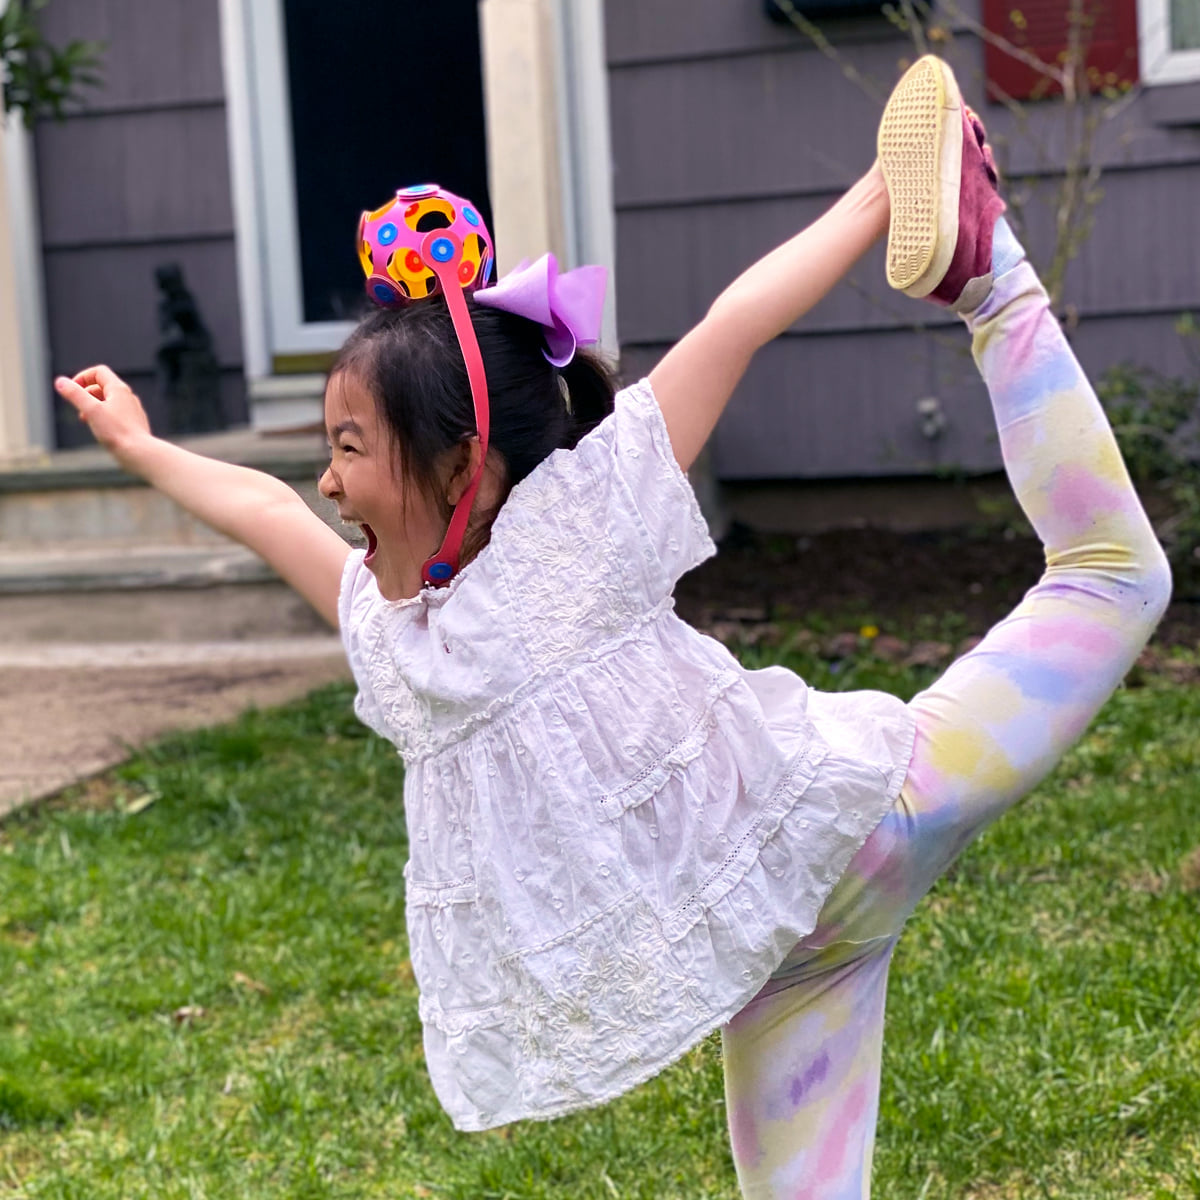 A little girl doing a Scorpion cheerleading pose in a backyard with a Clixo creation on her head